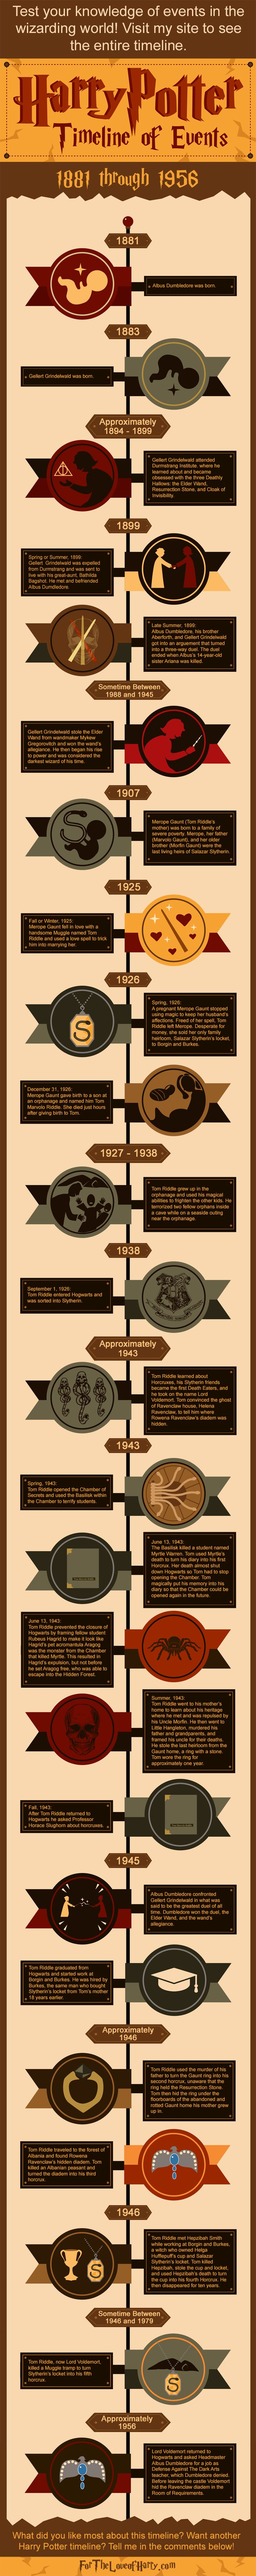 Infographic timeline of events that happened in the Harry Potter universe from 1881 through1956